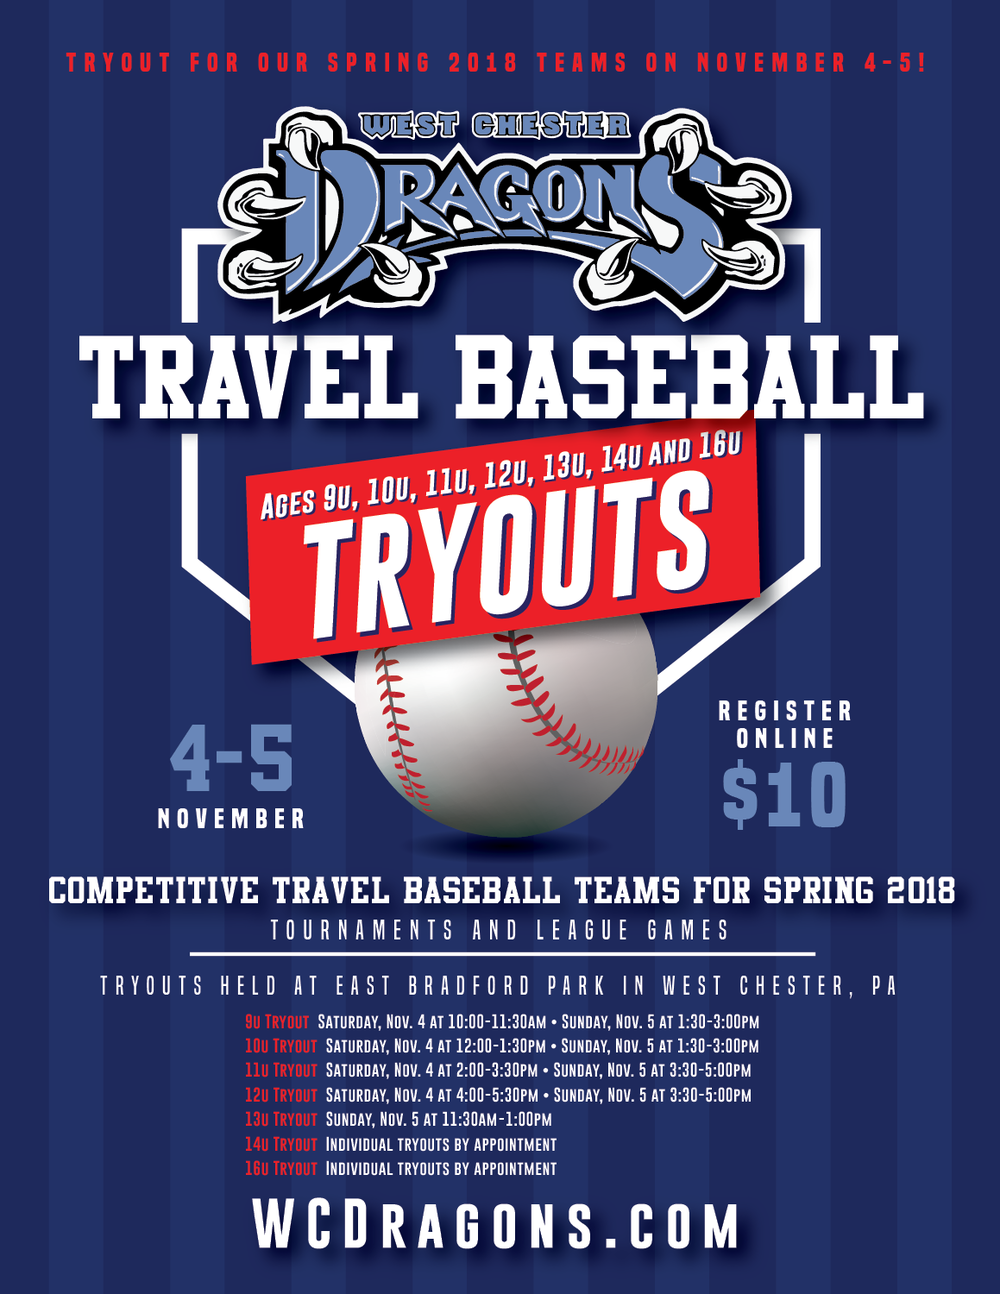 Open Tryouts for West Chester Dragons Travel Baseball's Spring/Summer 2018 Teams